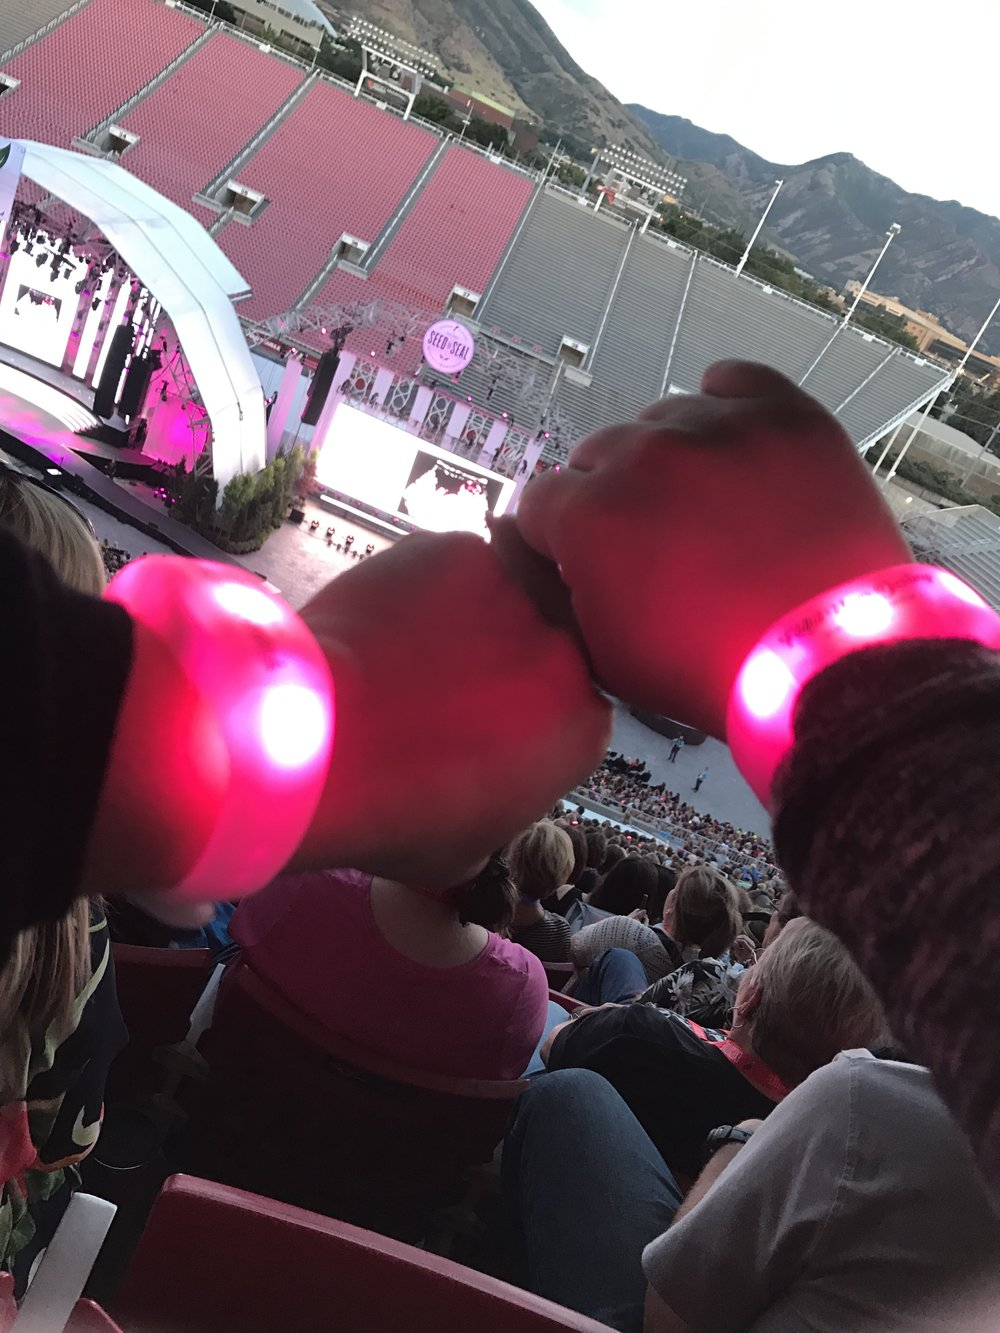 This year, YL gave us these light up wristbands that flashed different colors simultaneously and for different things like rank recognition, and the American colors! It was really cool to see!